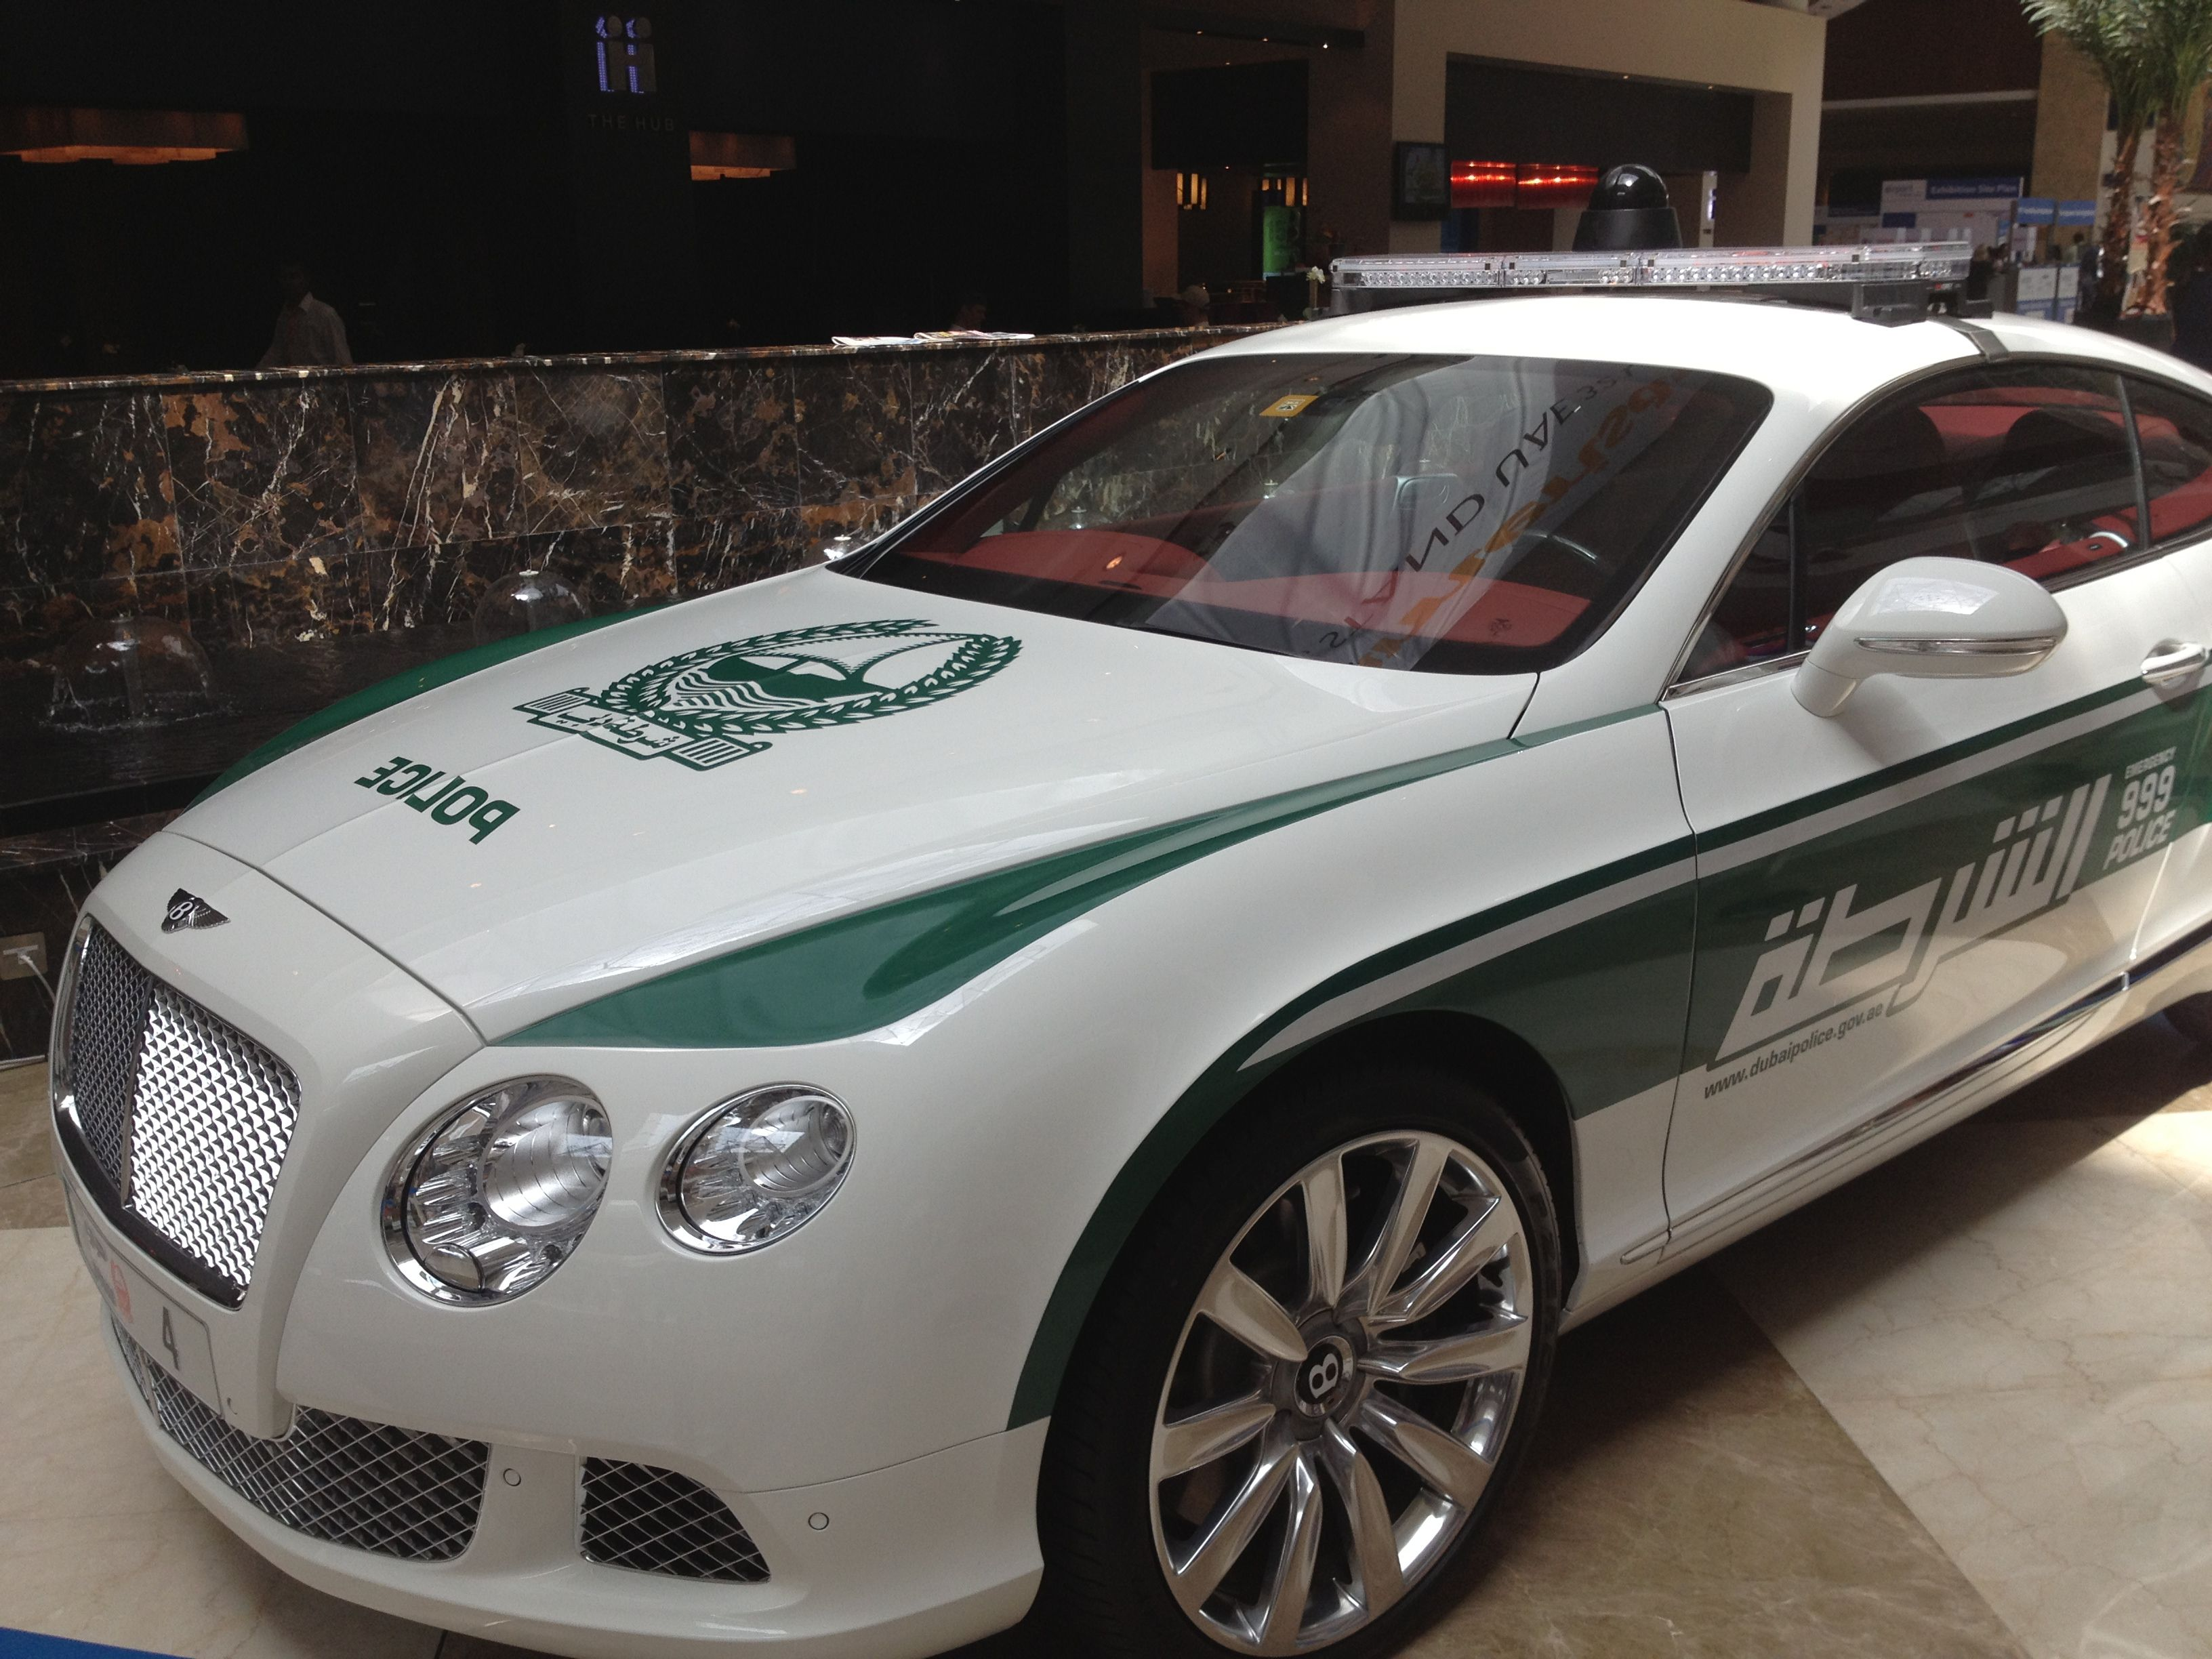 Dubai police Bentley Continental GT Police cars, Bentley